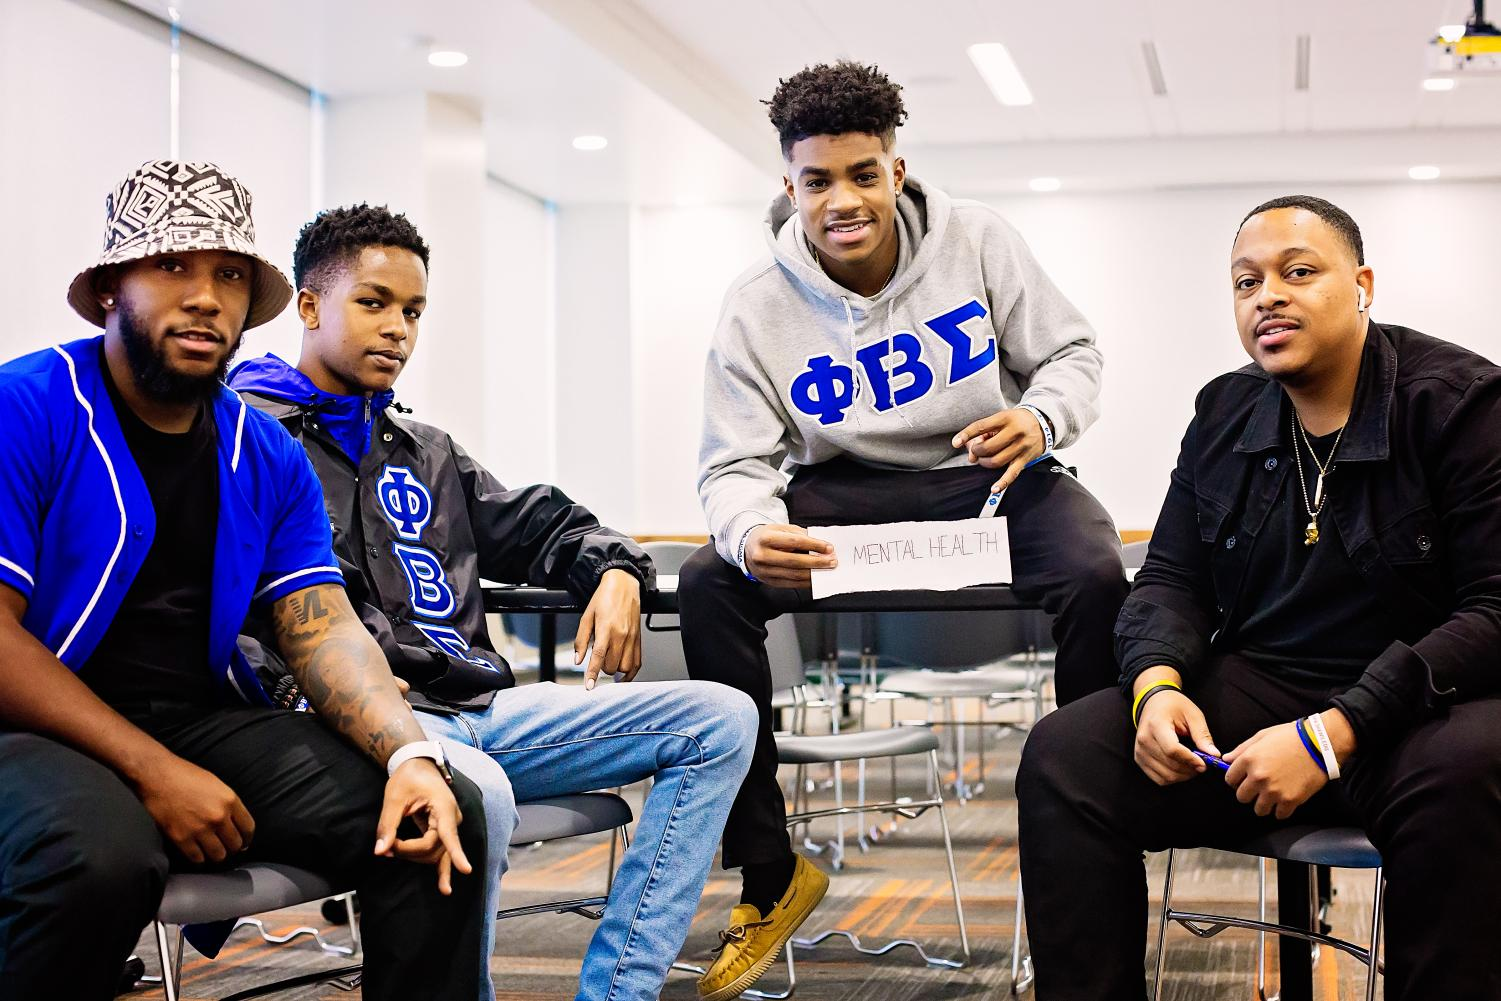 From left to right: Phi Beta Sigma members Stephen Arnold, John Kimani,  Malachi Powell, and Mark Hamlett. The fraternity is hosting the